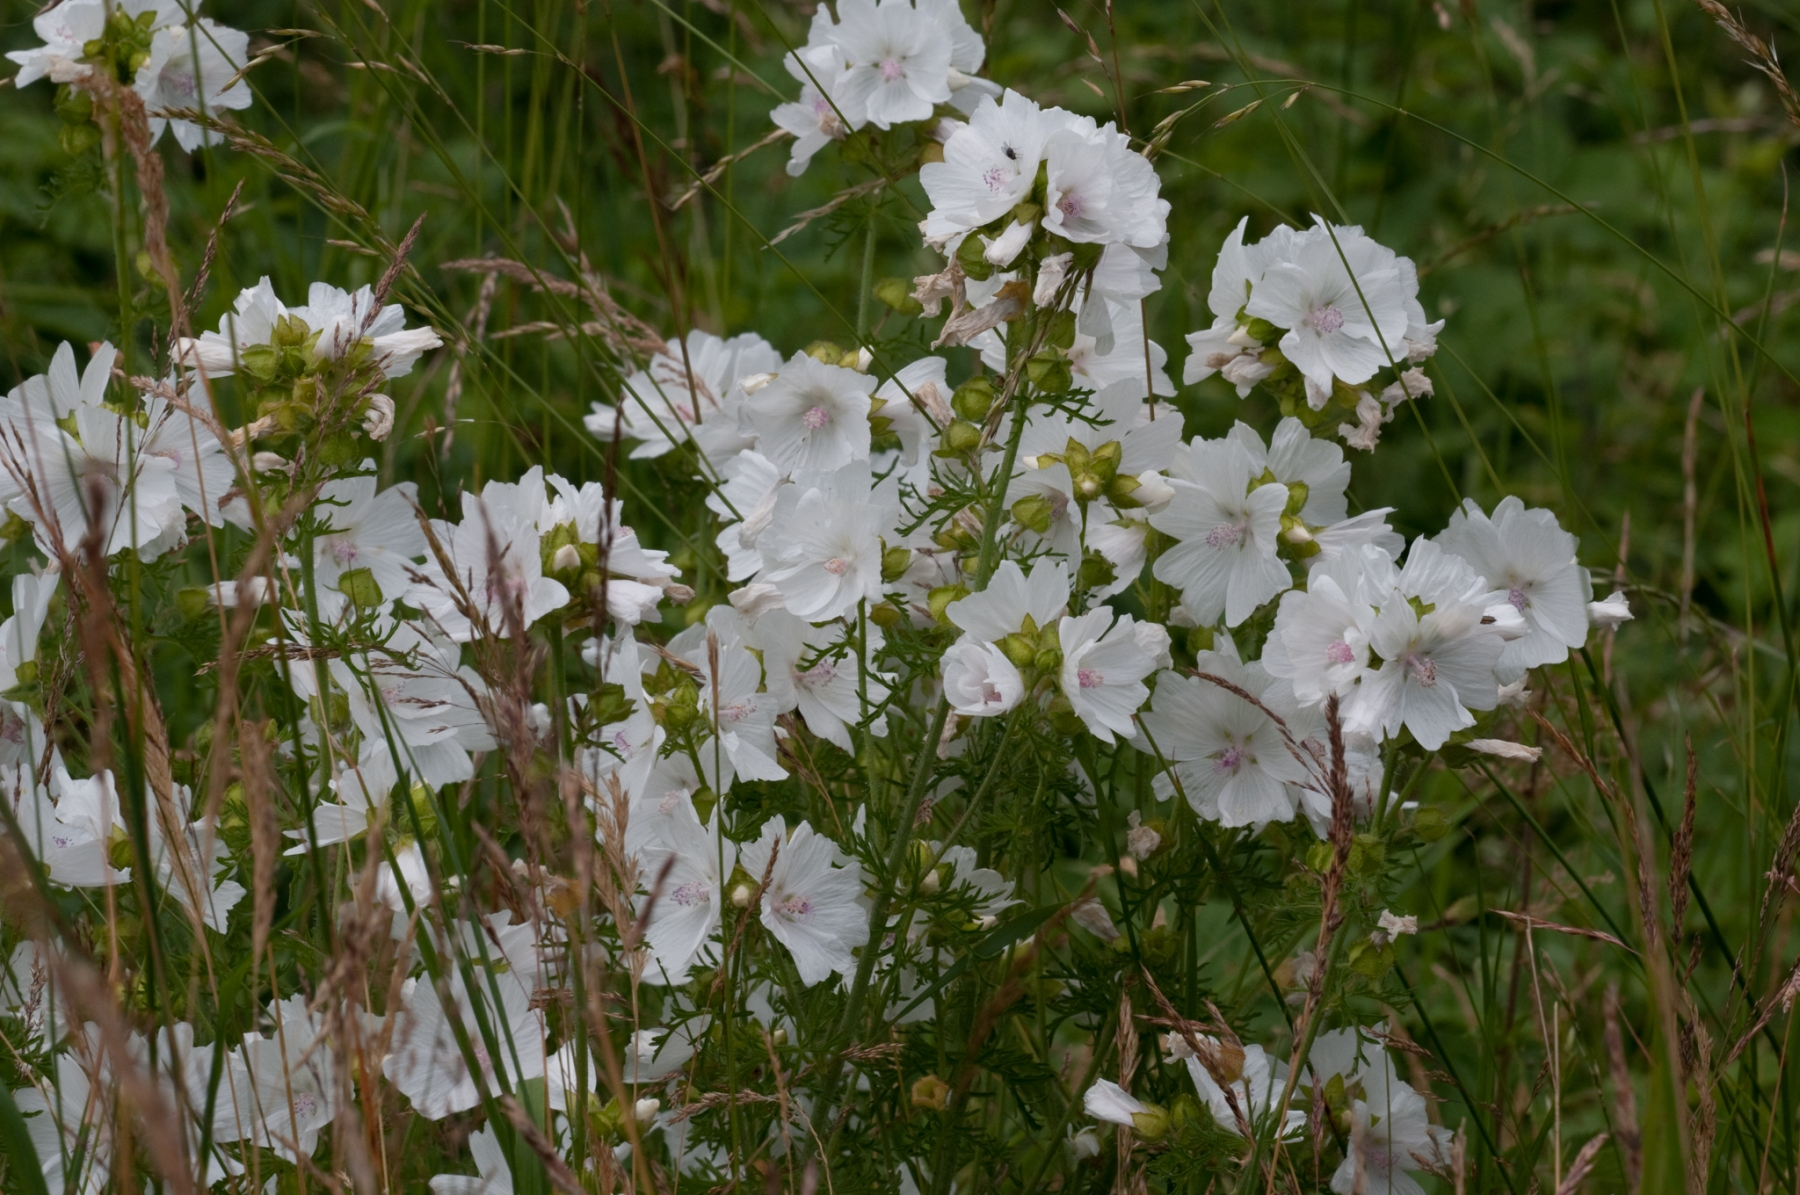 Musk Mallow (Malva moschata), Lound, Notts.